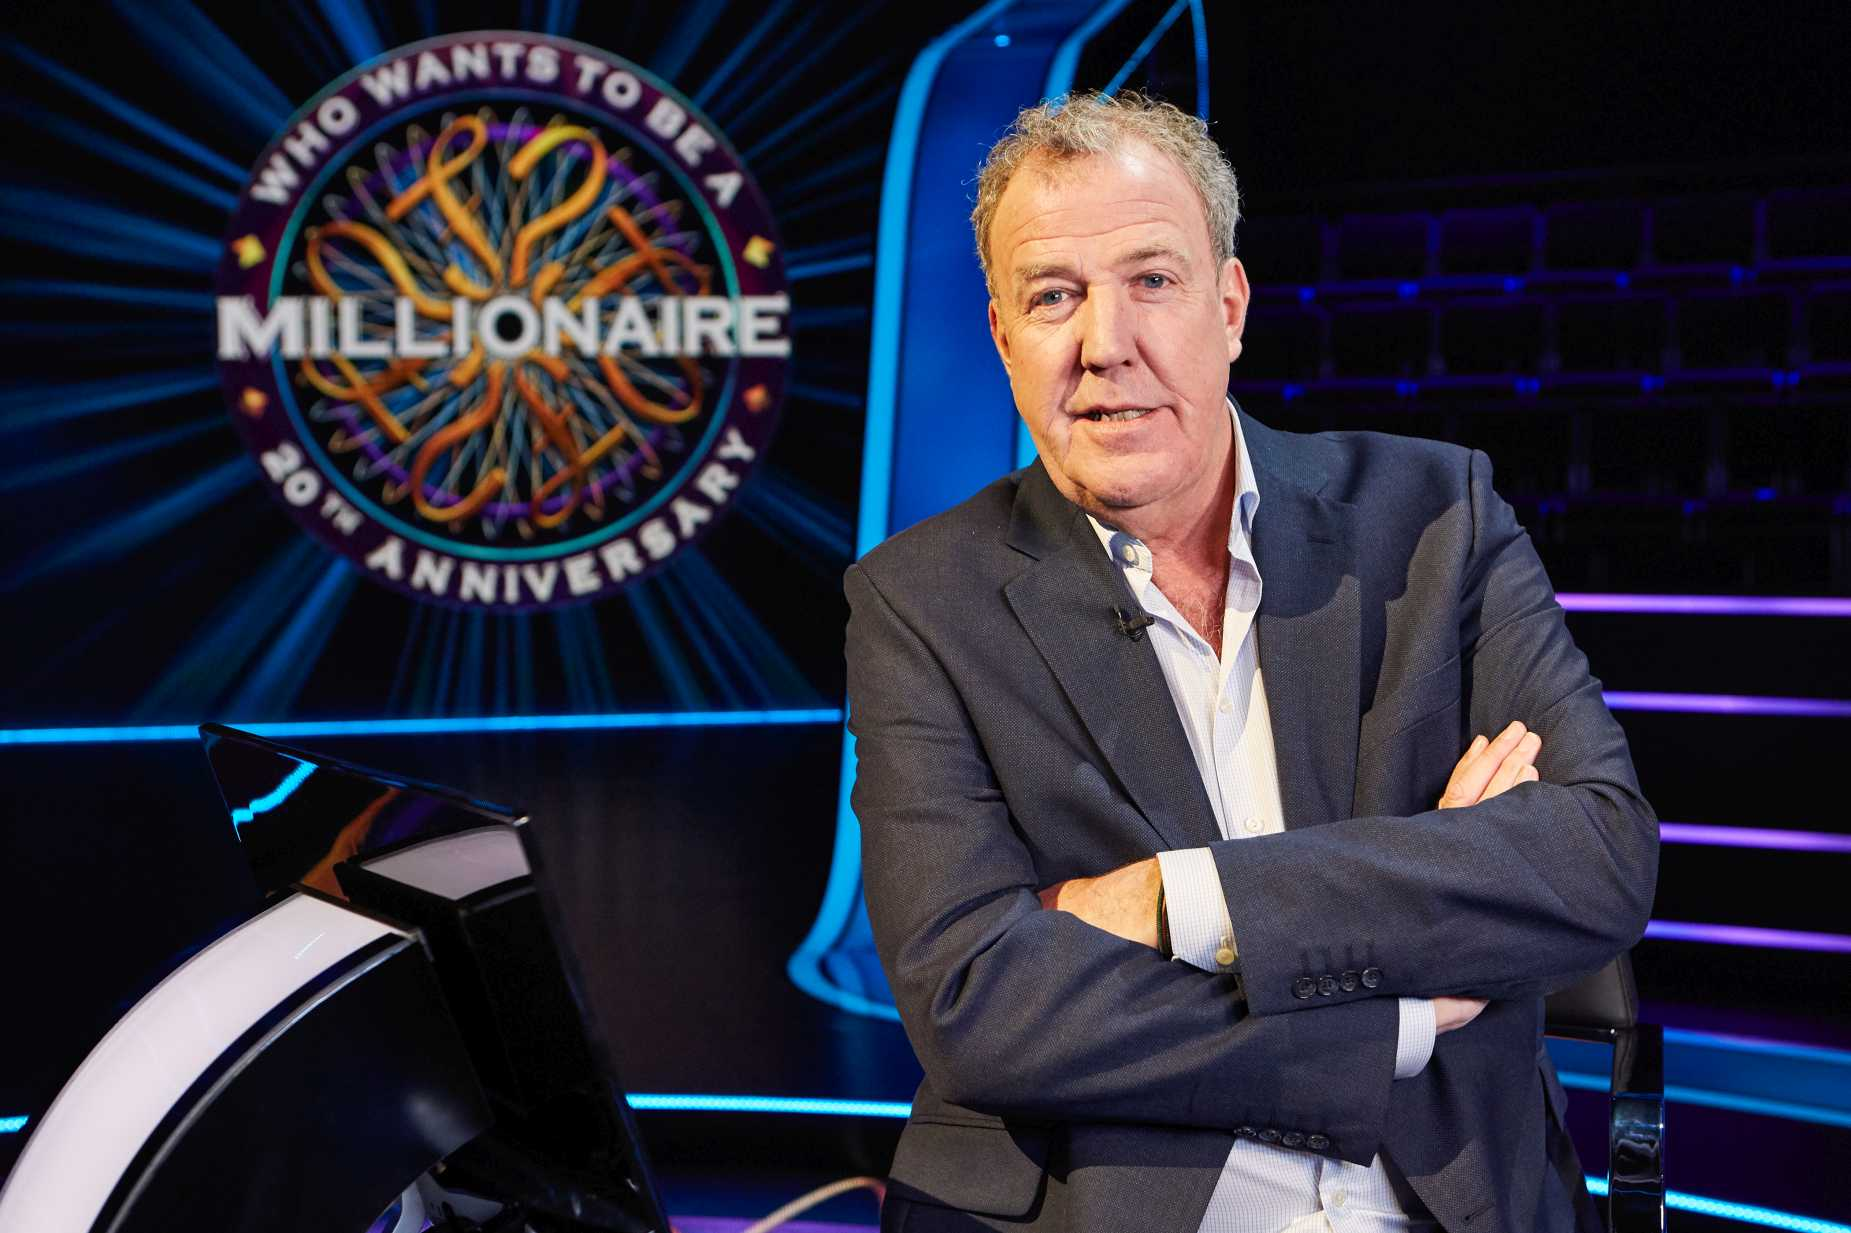 WHO_WANTS_TO_BE_A_MILLIONAIRE_UK2018_S01_Photo_Gallery_Talent_05_05_09_2017.JPG